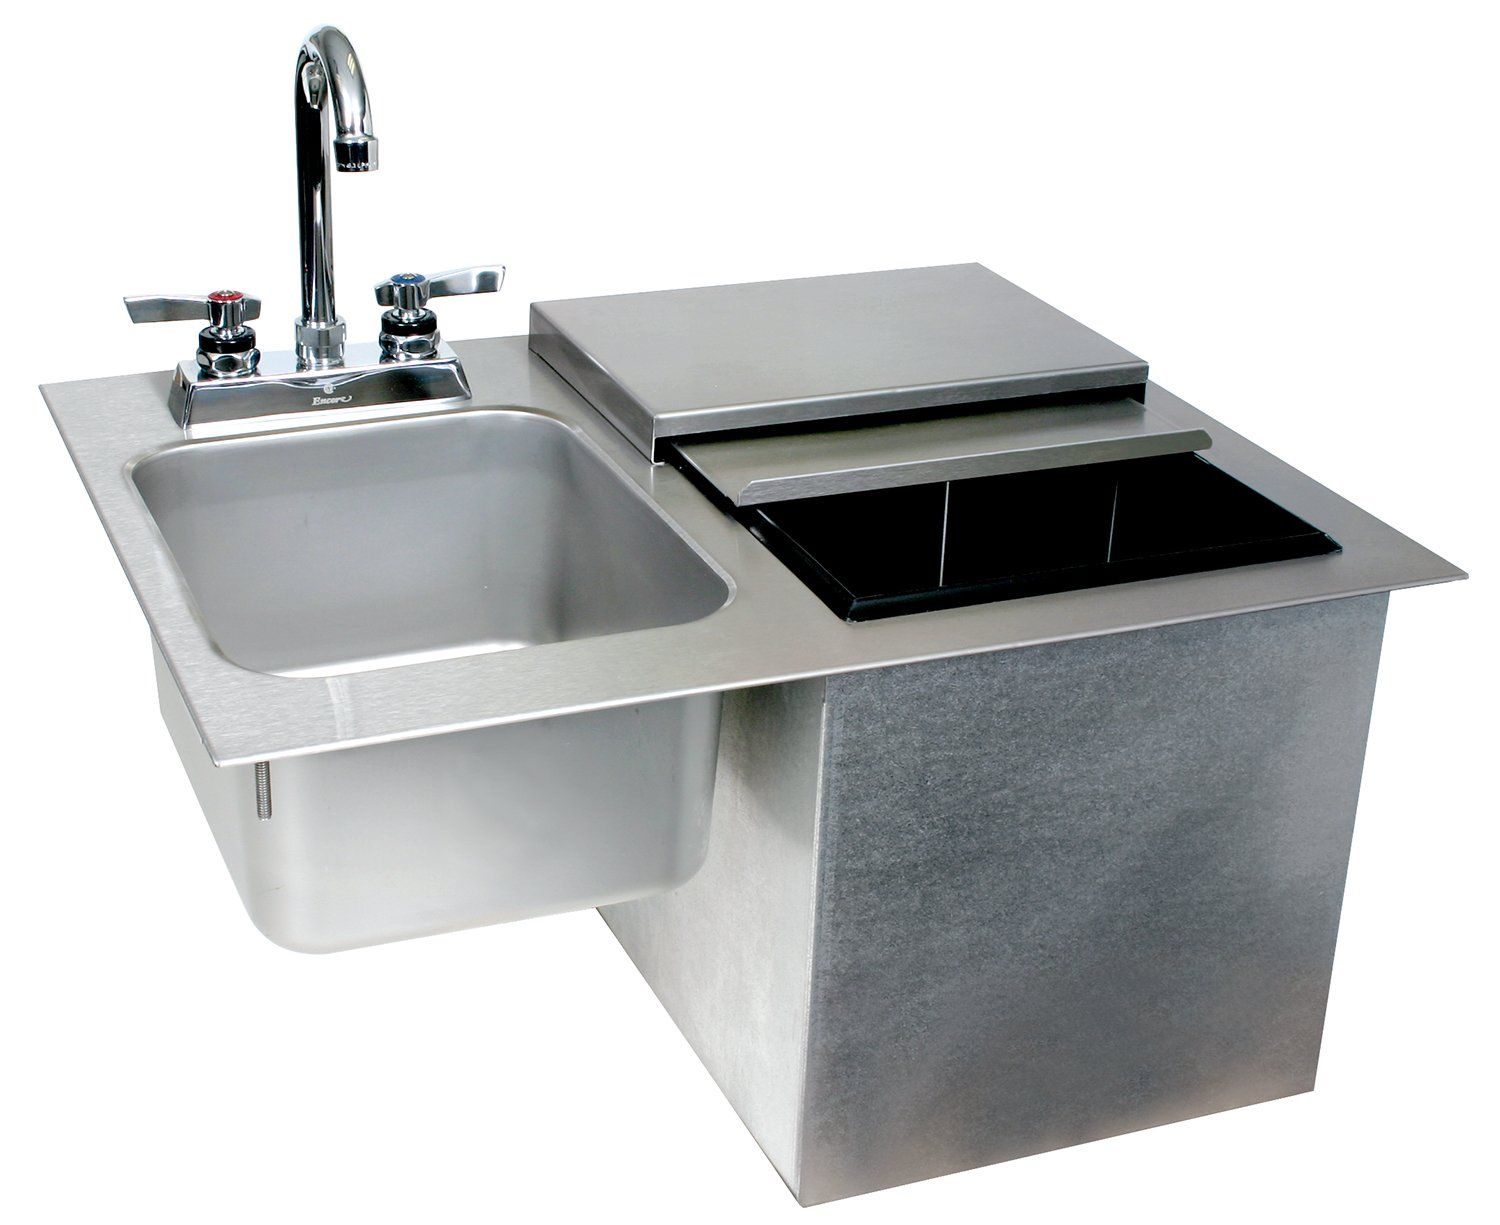 Glastender Commercial Drop In Ice Bin With Sink Faucet Atfaucet Glastender Dropinicebins Dropins Underbar Bars With Images Ice Bins Sink Faucets Sink